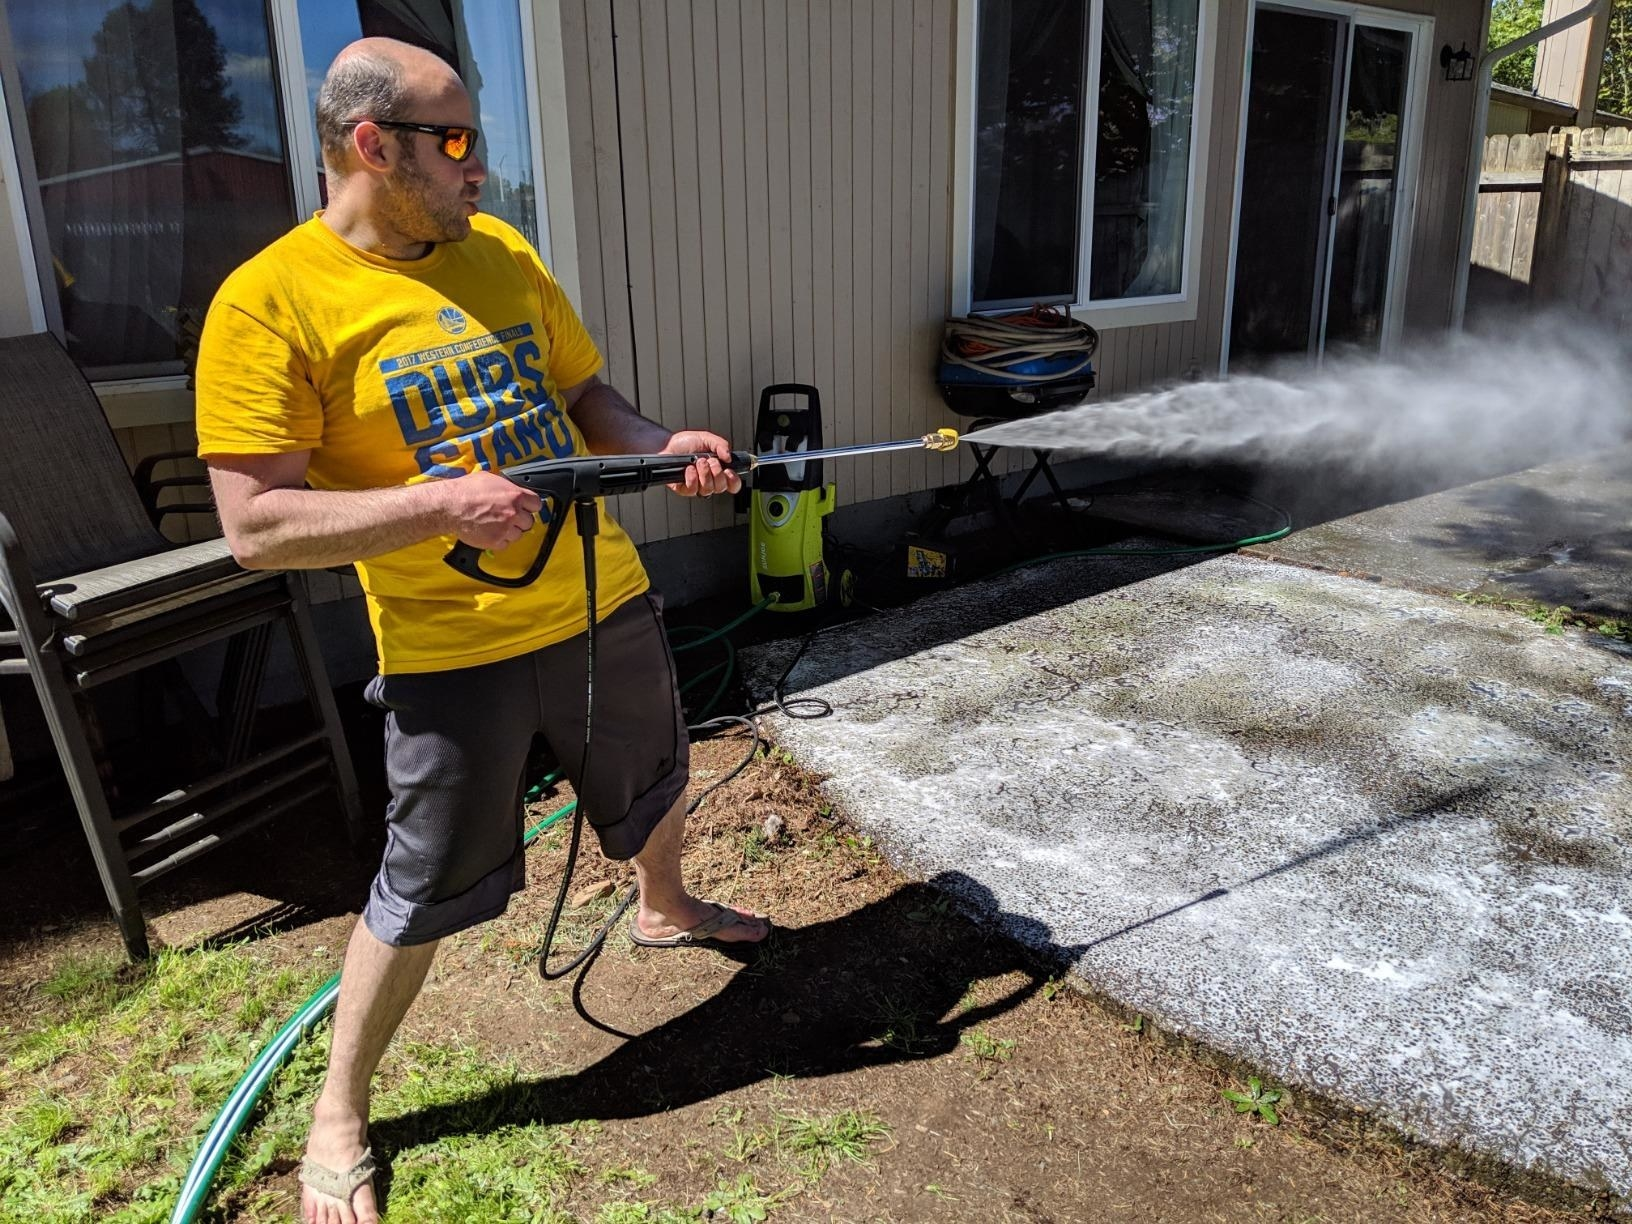 reviewer uses water pressure gun and looks like they're having a great time